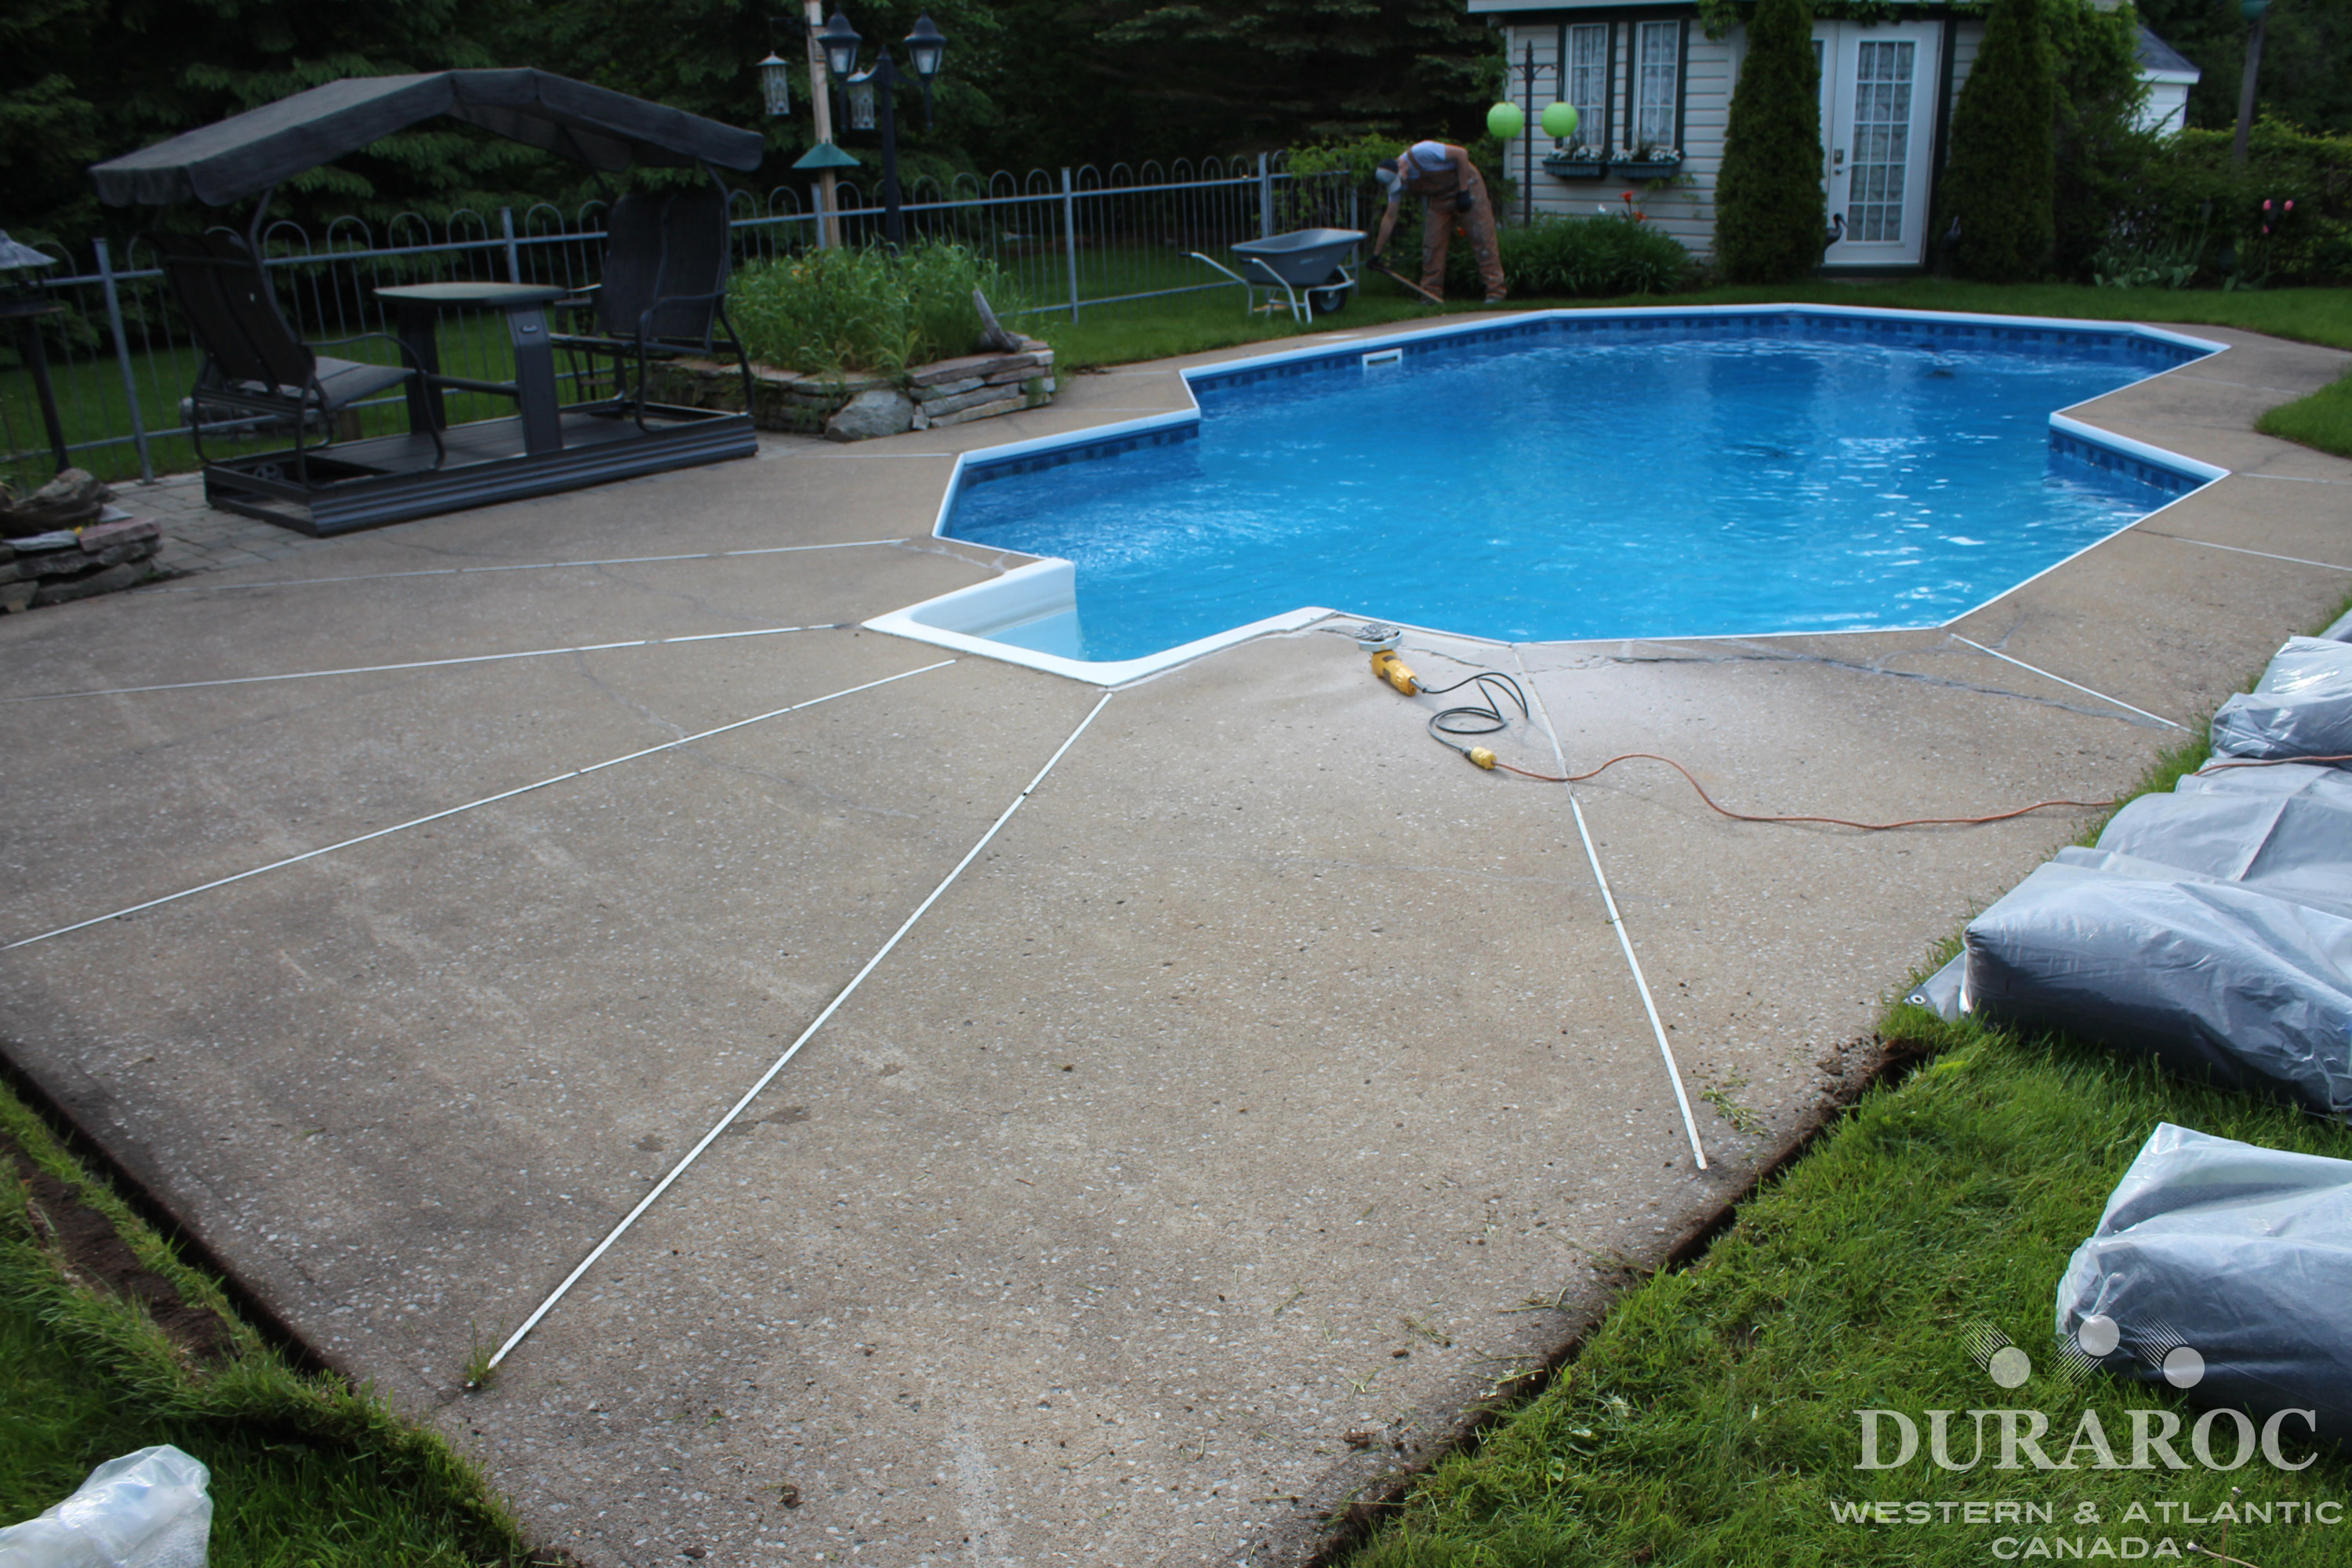 Concrete pool borders damaged